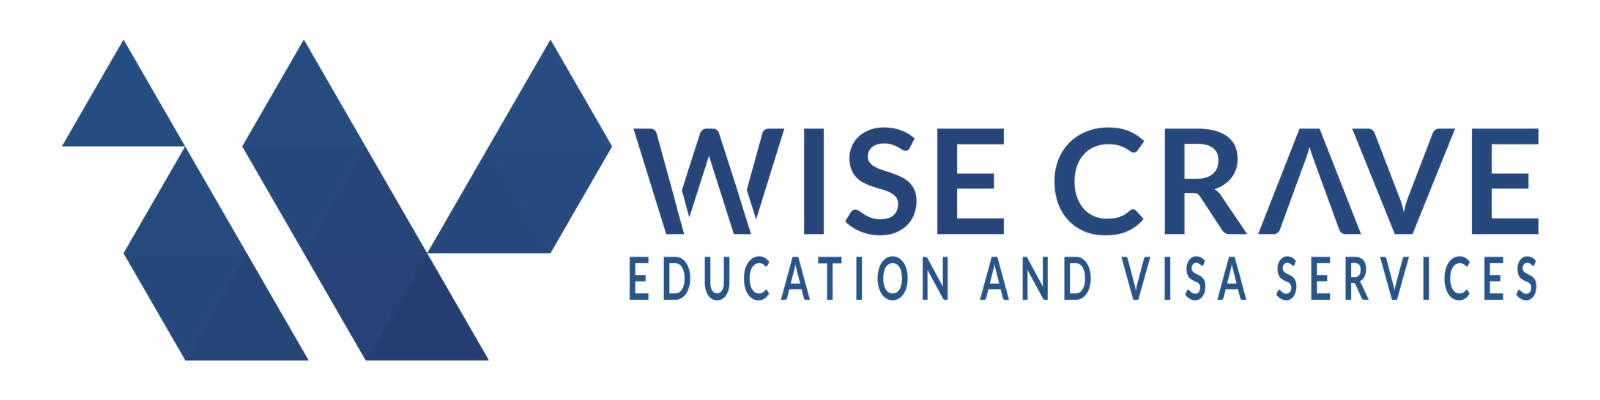 Wise Crave Education and Visa Service